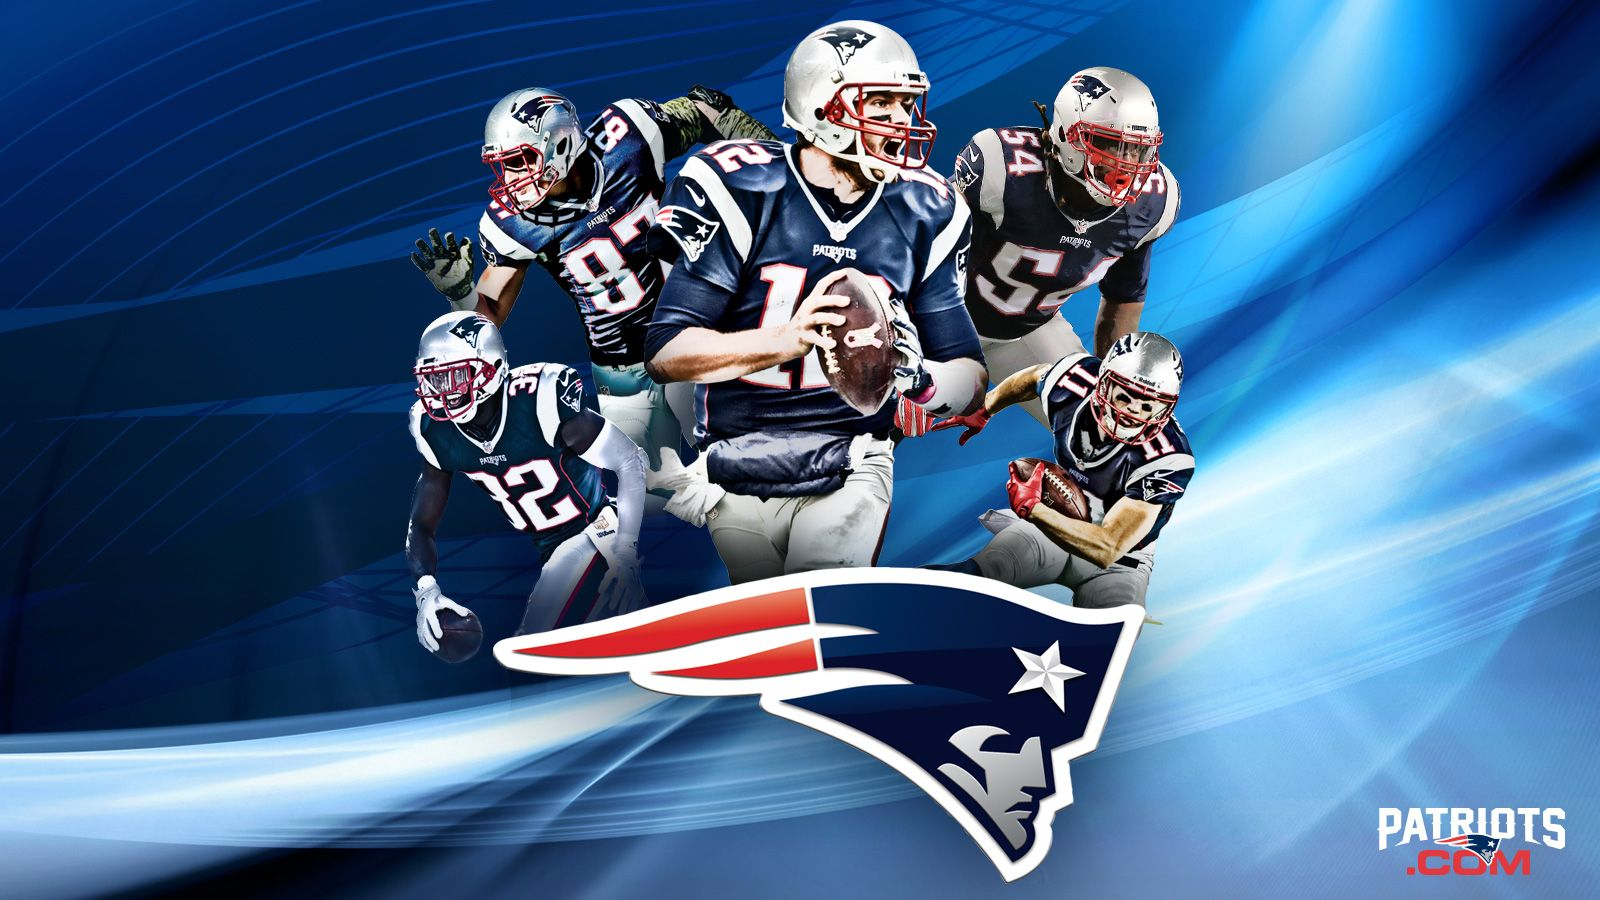 New england patriots wallpaper collection for free download